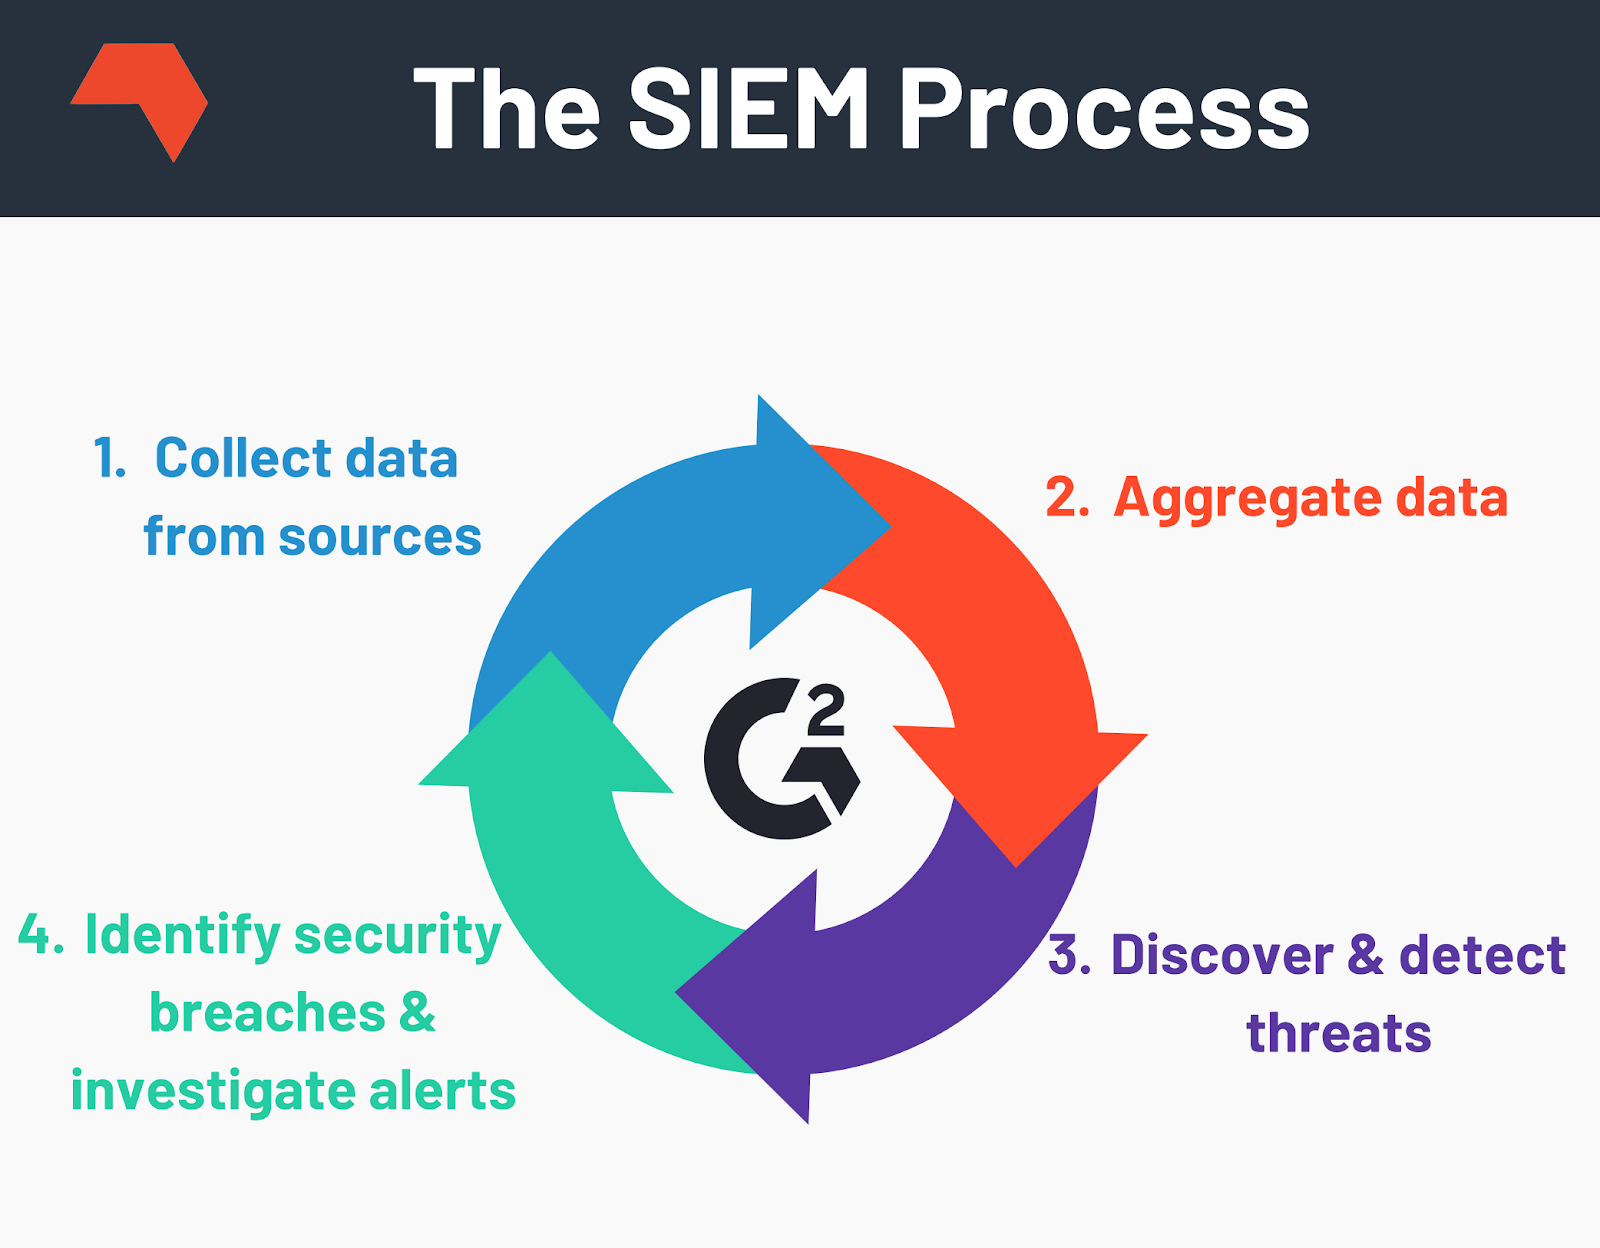 How does SIEM work?